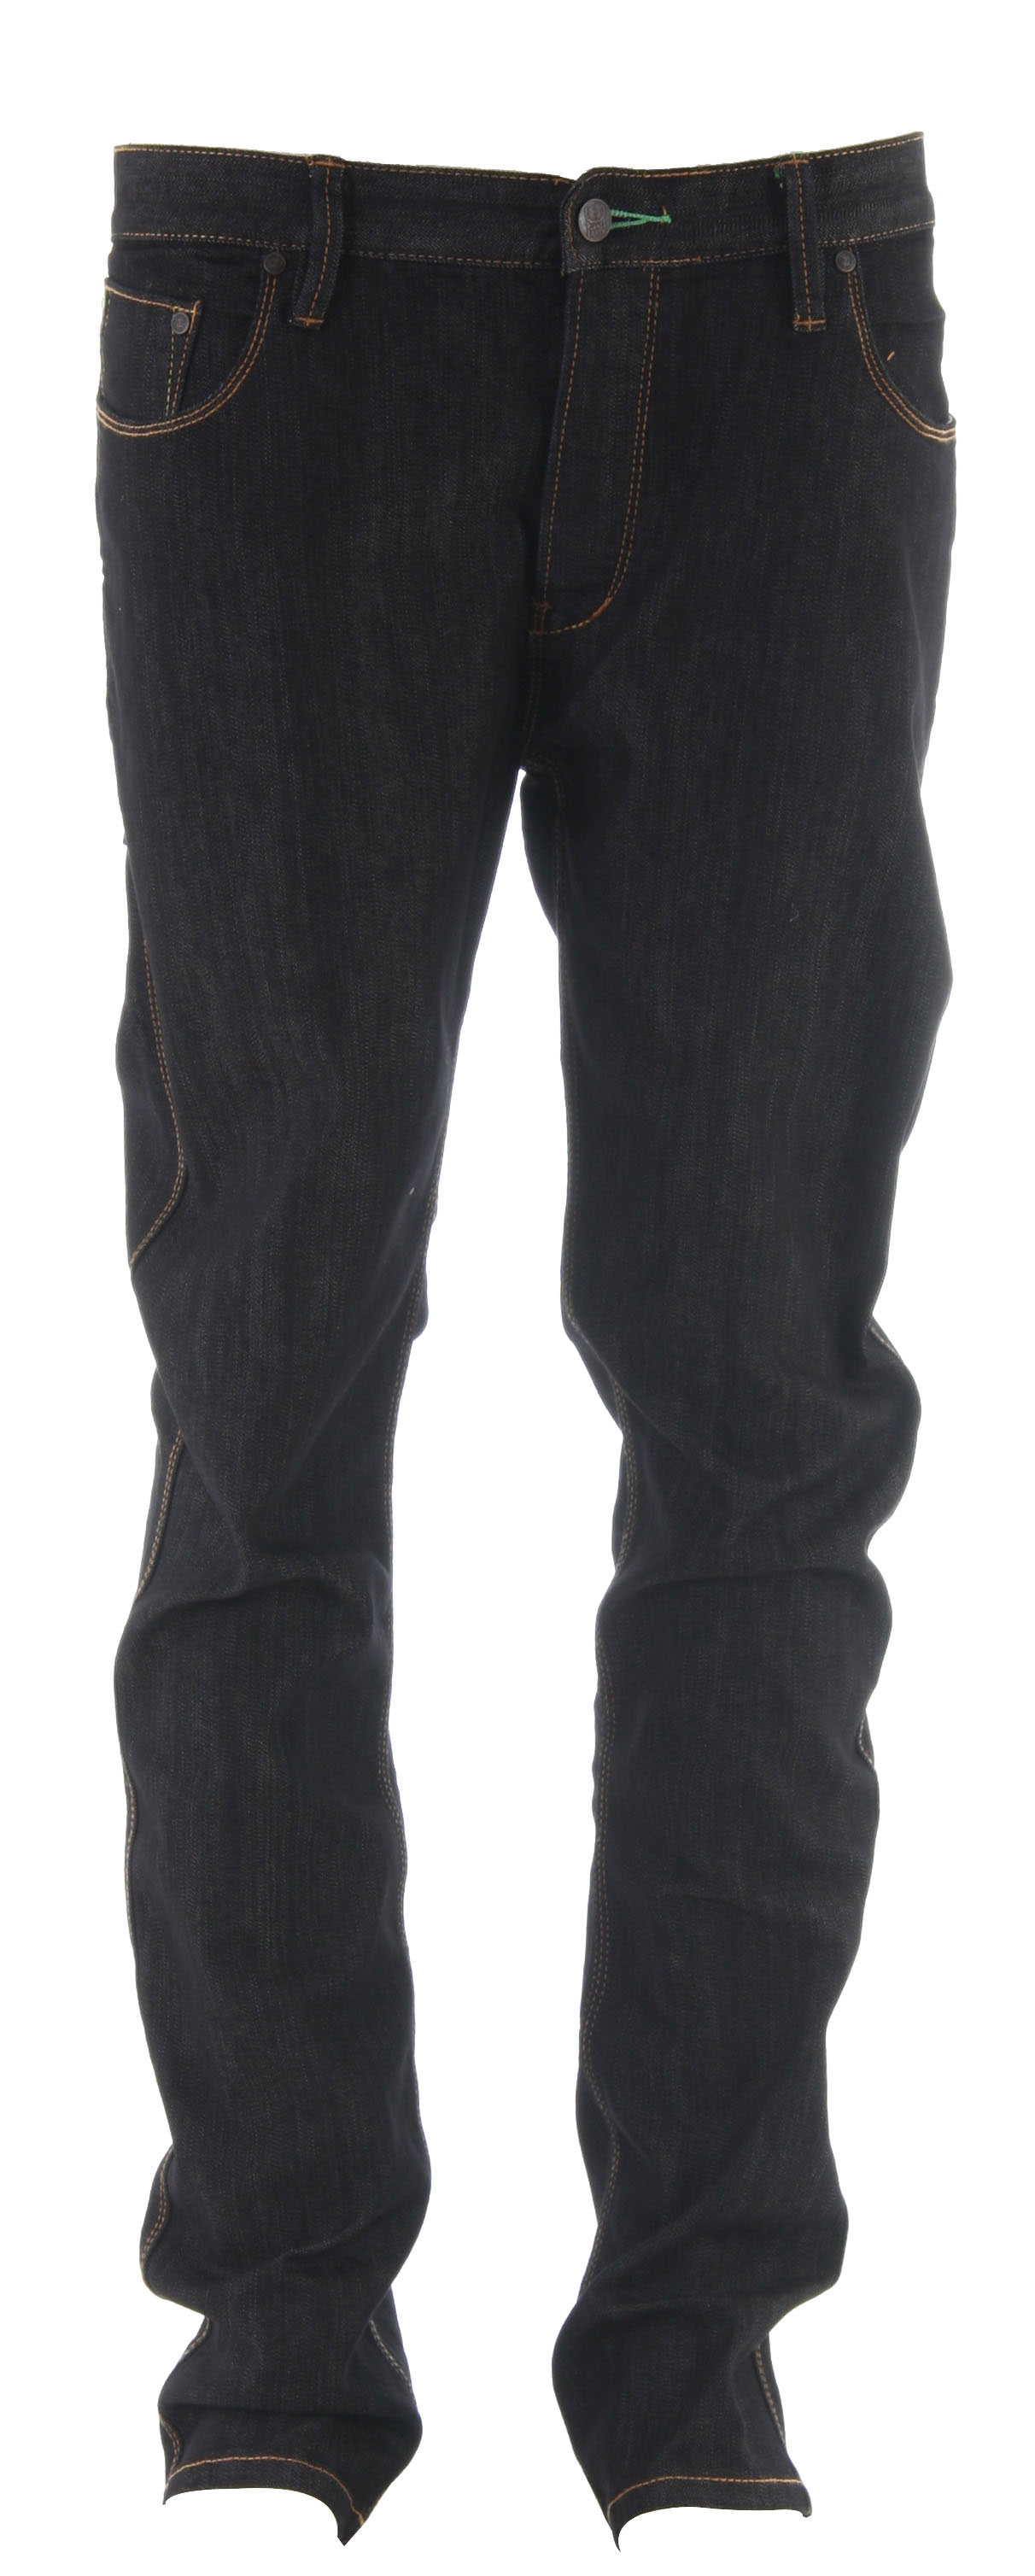 Key Features of the Planet Earth Slim Stretch Pants: 5 pocket slim fit stretch jean 20% organic cotton / 54% conventional cotton / 26% polyester (T400) stretch denim. - $38.95